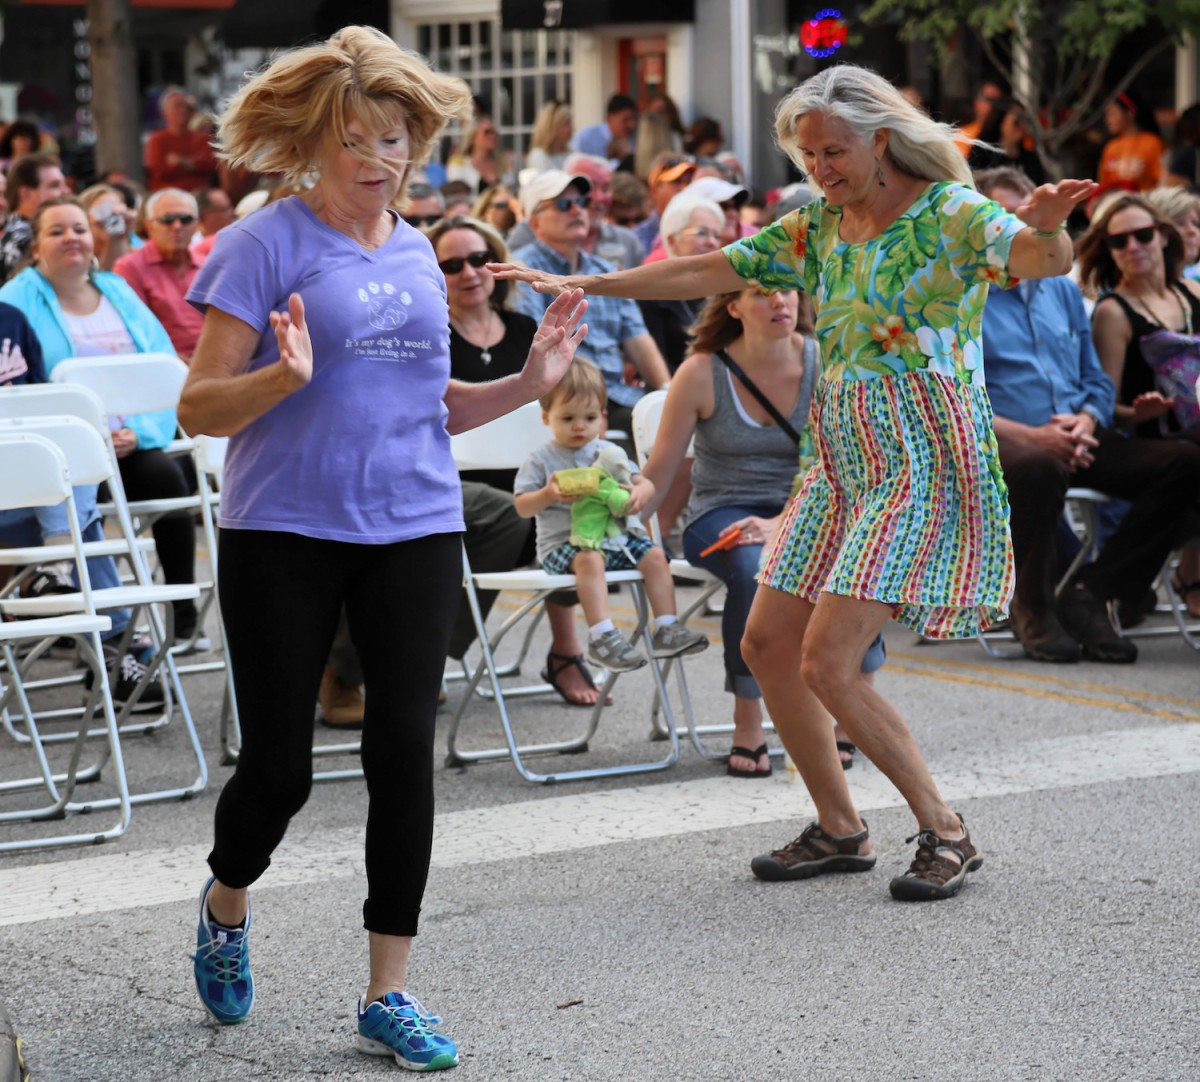 Trains, Jazz, Blues: Old Webster Festival Has It All